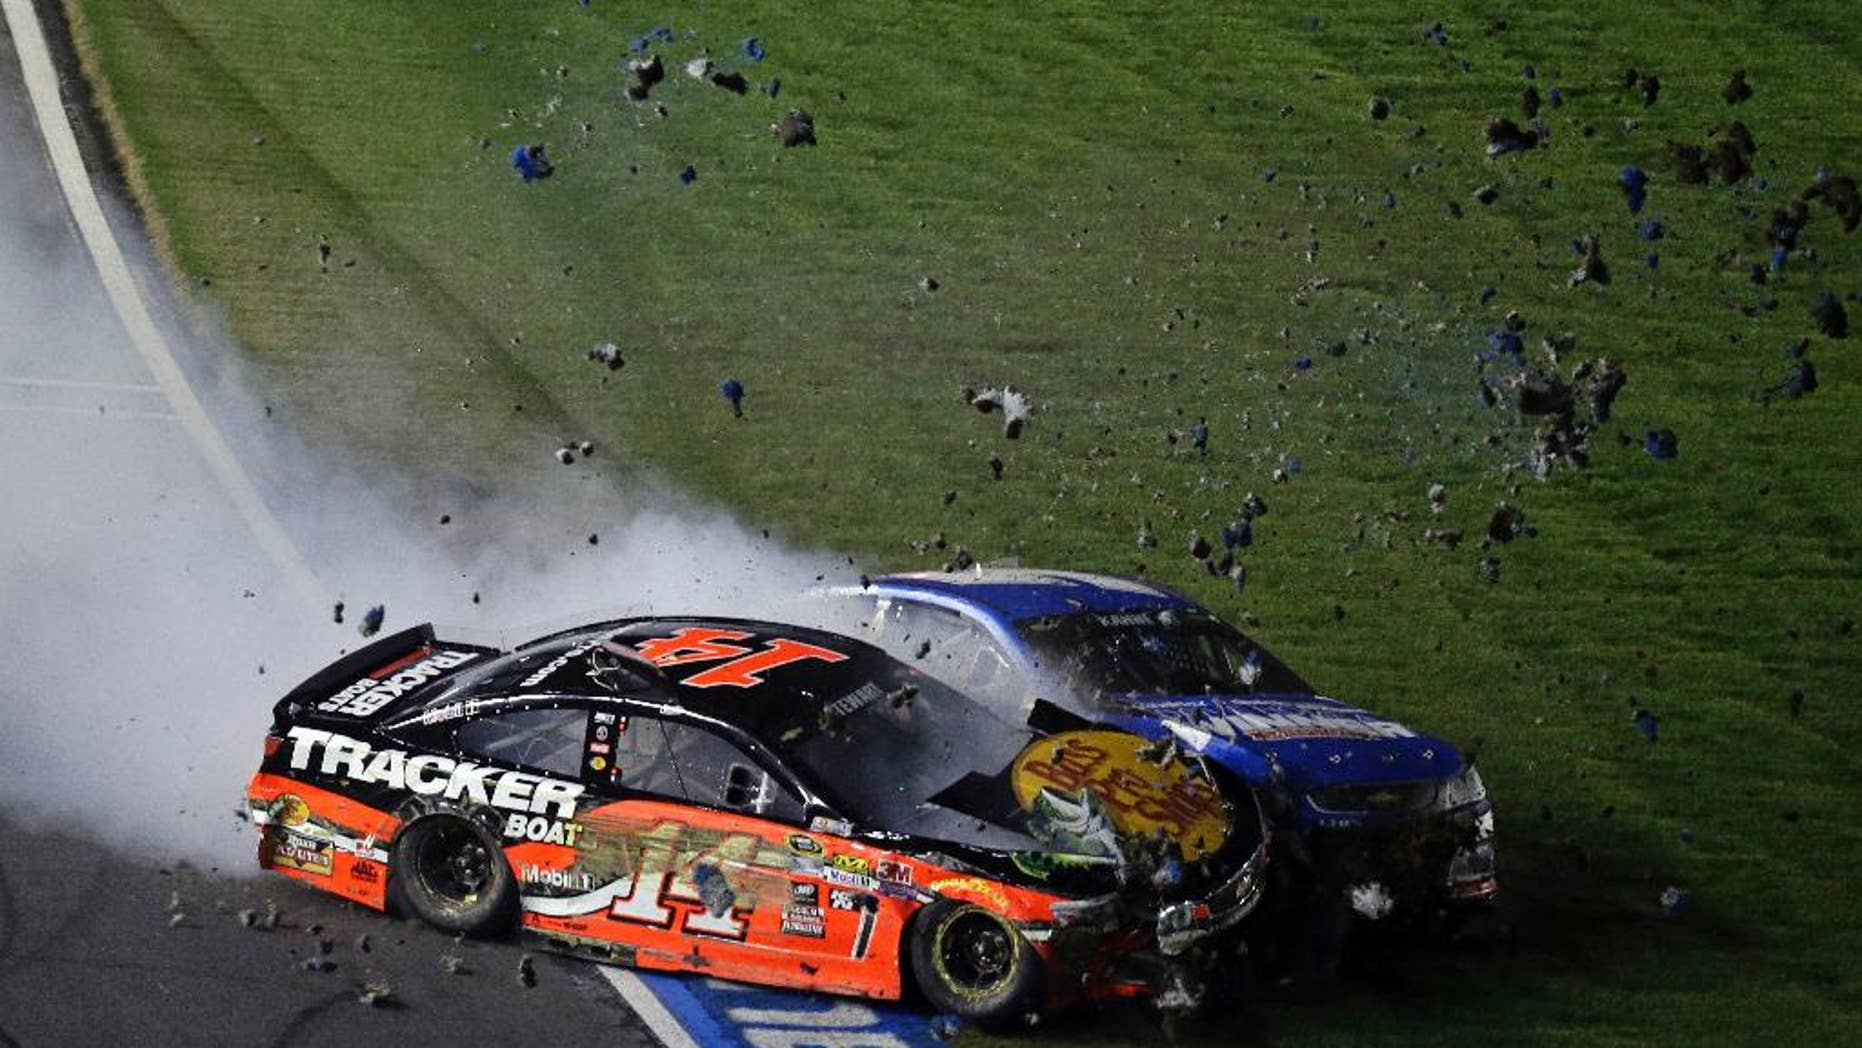 Tony Stewart (14) collides with Kasey Kahne on the front stretch during the NASCAR Sprint All-Star auto race at Charlotte Motor Speedway in Concord, N.C., Saturday, May 21, 2016. (AP Photo/Gerry Broome)